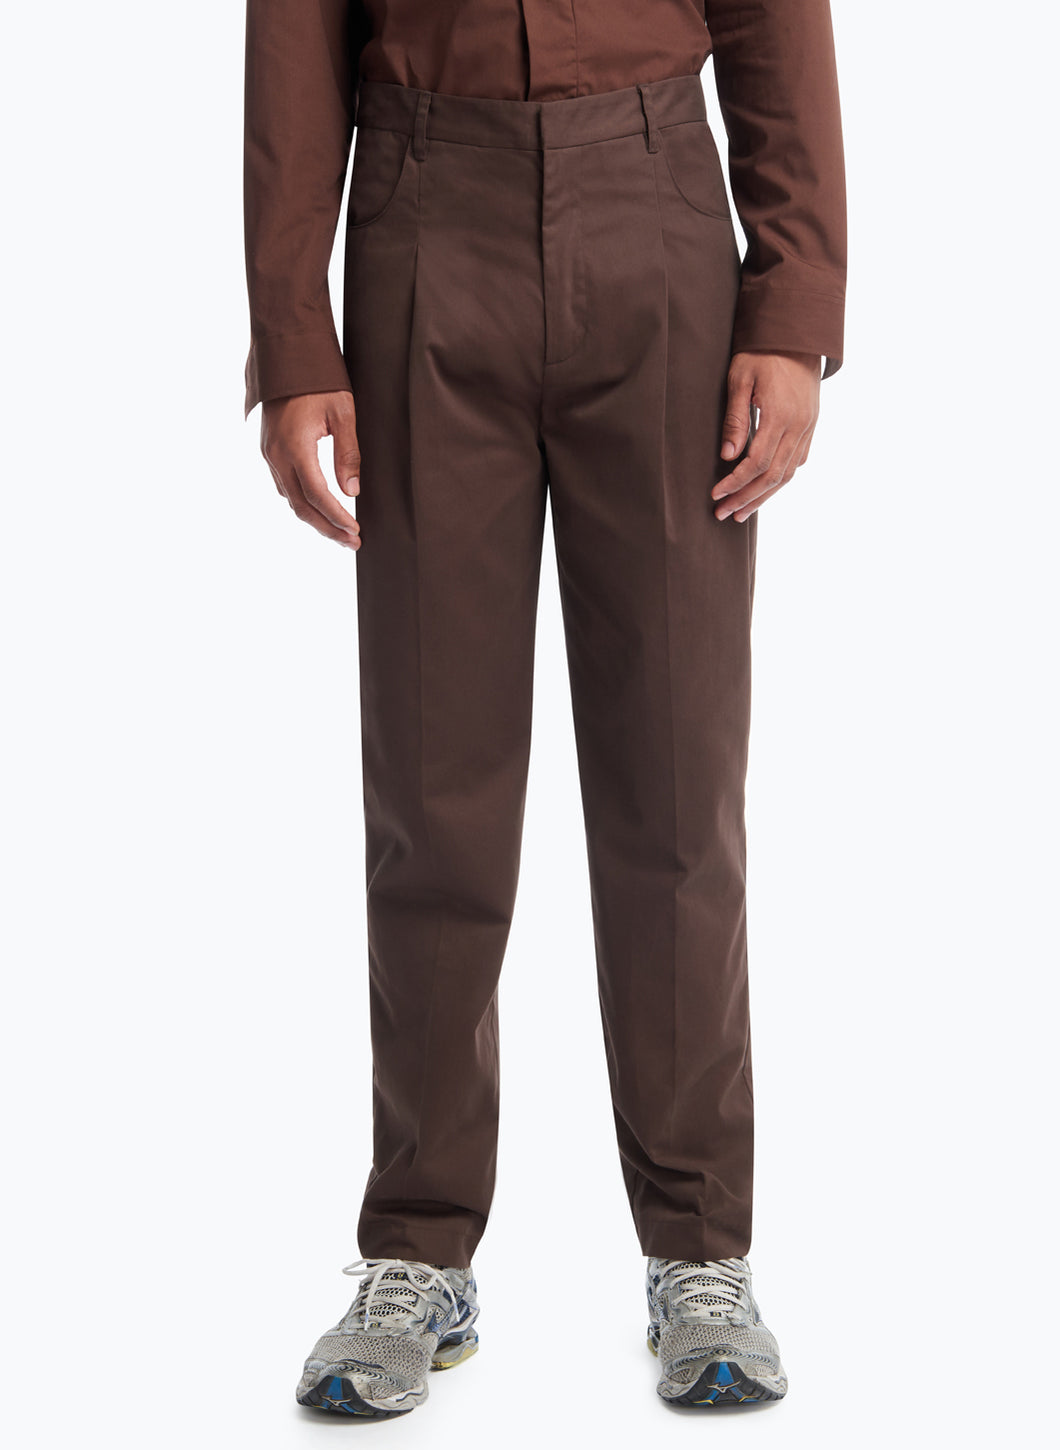 Pants with Hip Pockets in Chocolate Cotton Satin